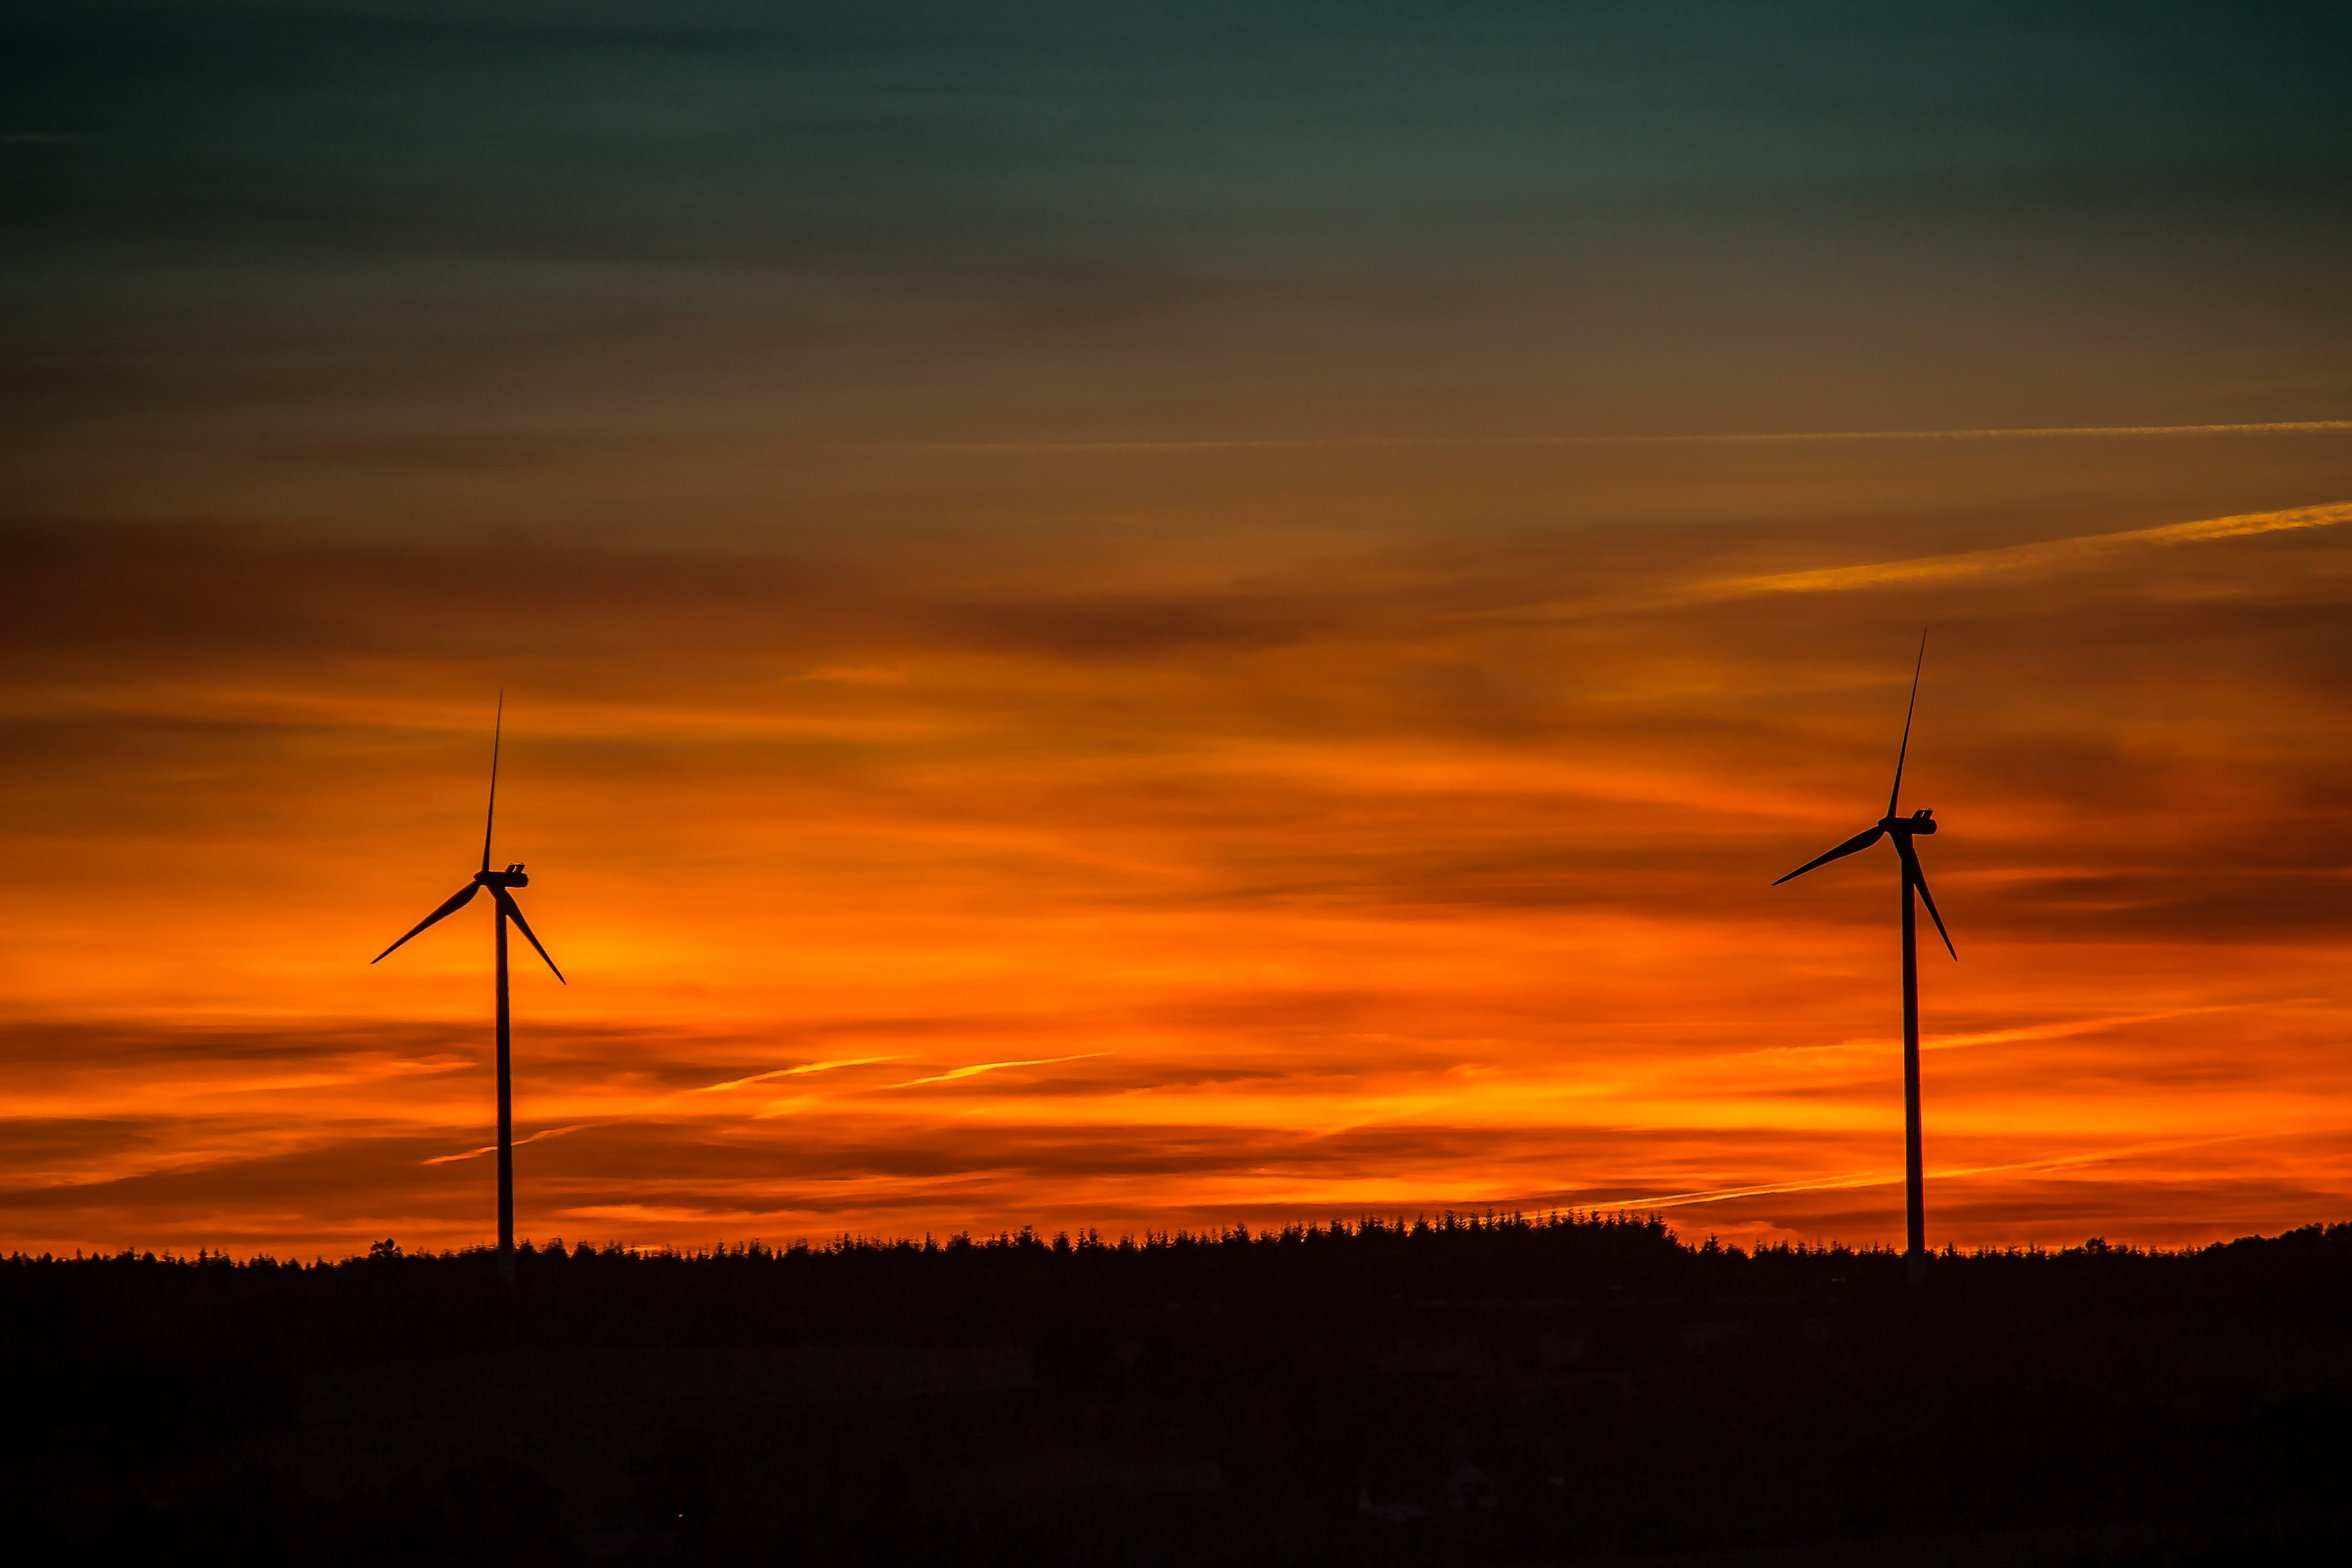 Silhouette of Windmills Under Orange Sunset